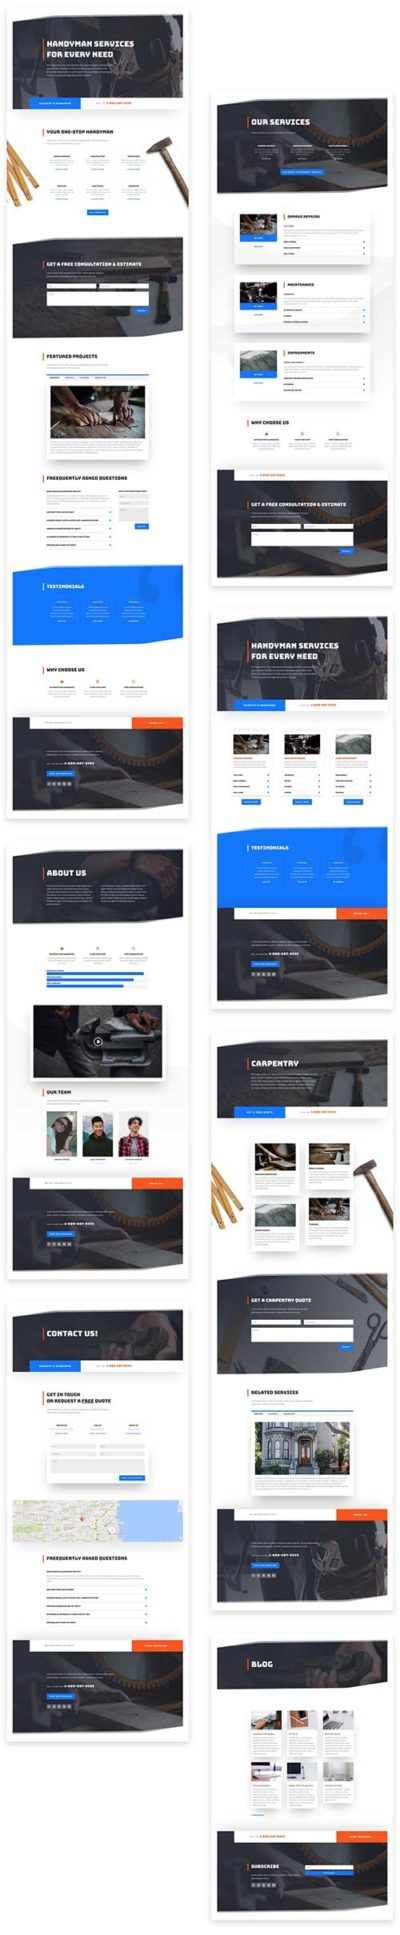 free handyman divi layout pack